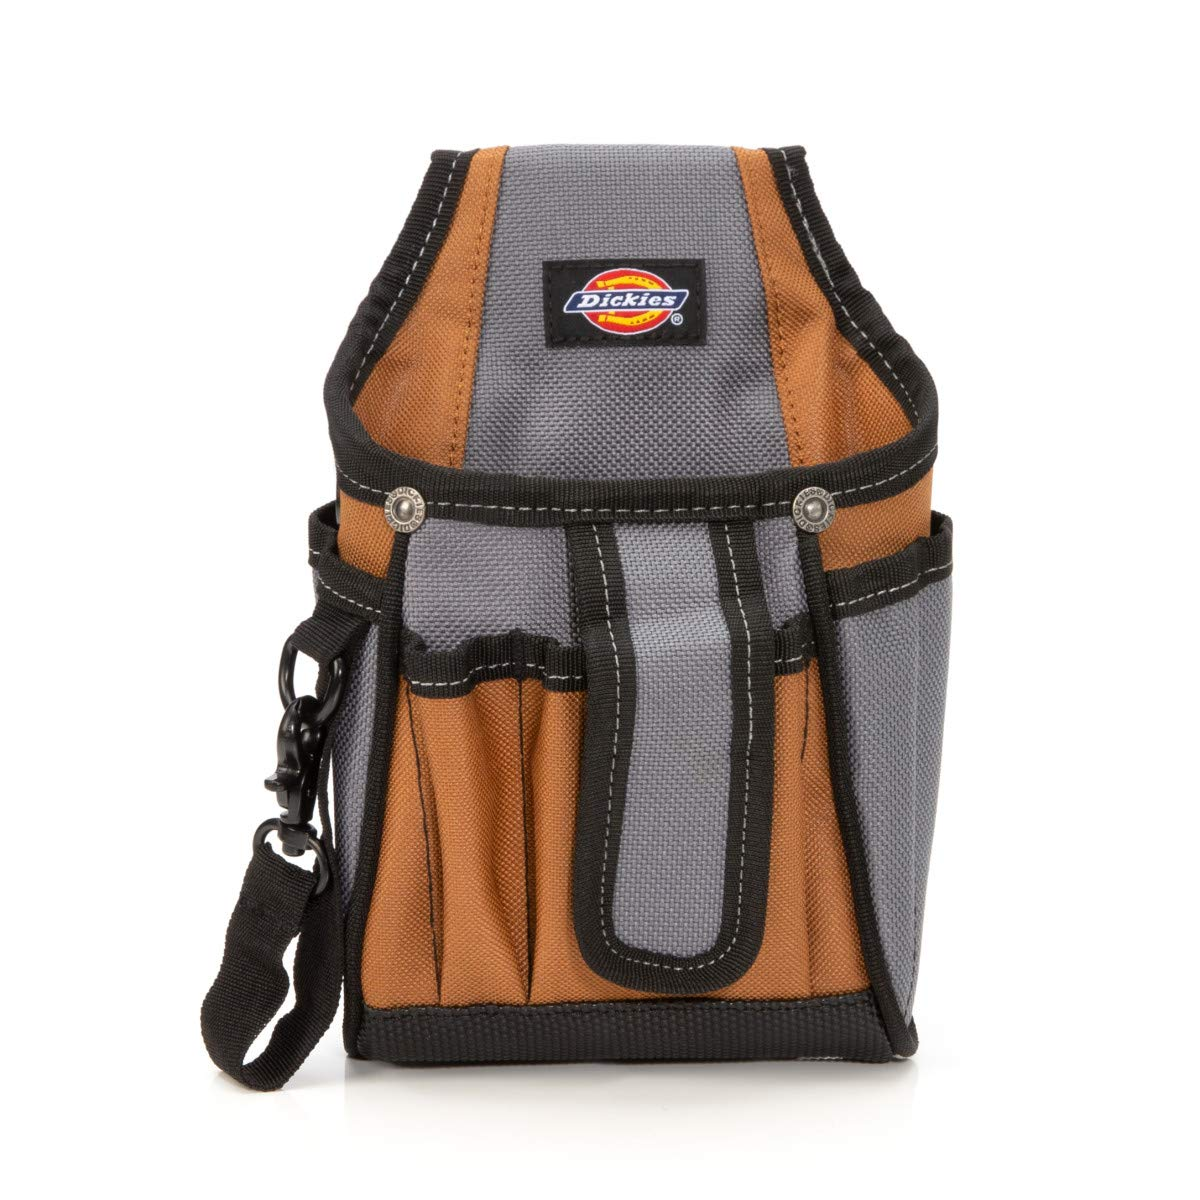 Dickies Work Gear 57098 7-Pocket Tech Pouch with Tape Tether